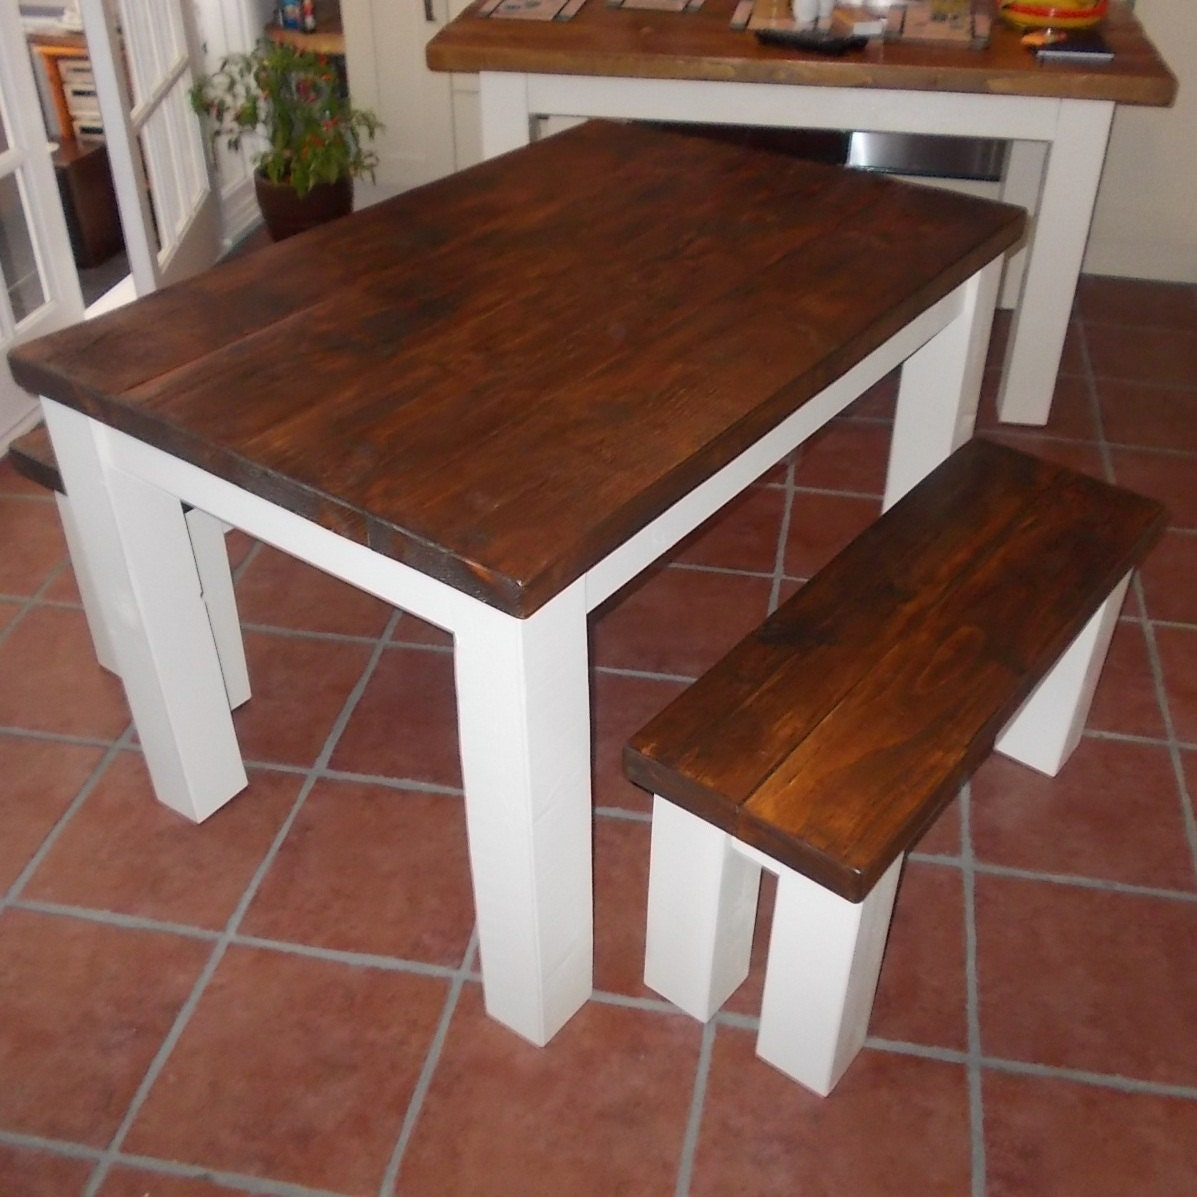 Rustic Kitchen Table With Benches That Can Slide: New Handmade Rustic Kitchen Table & Bench Set 009